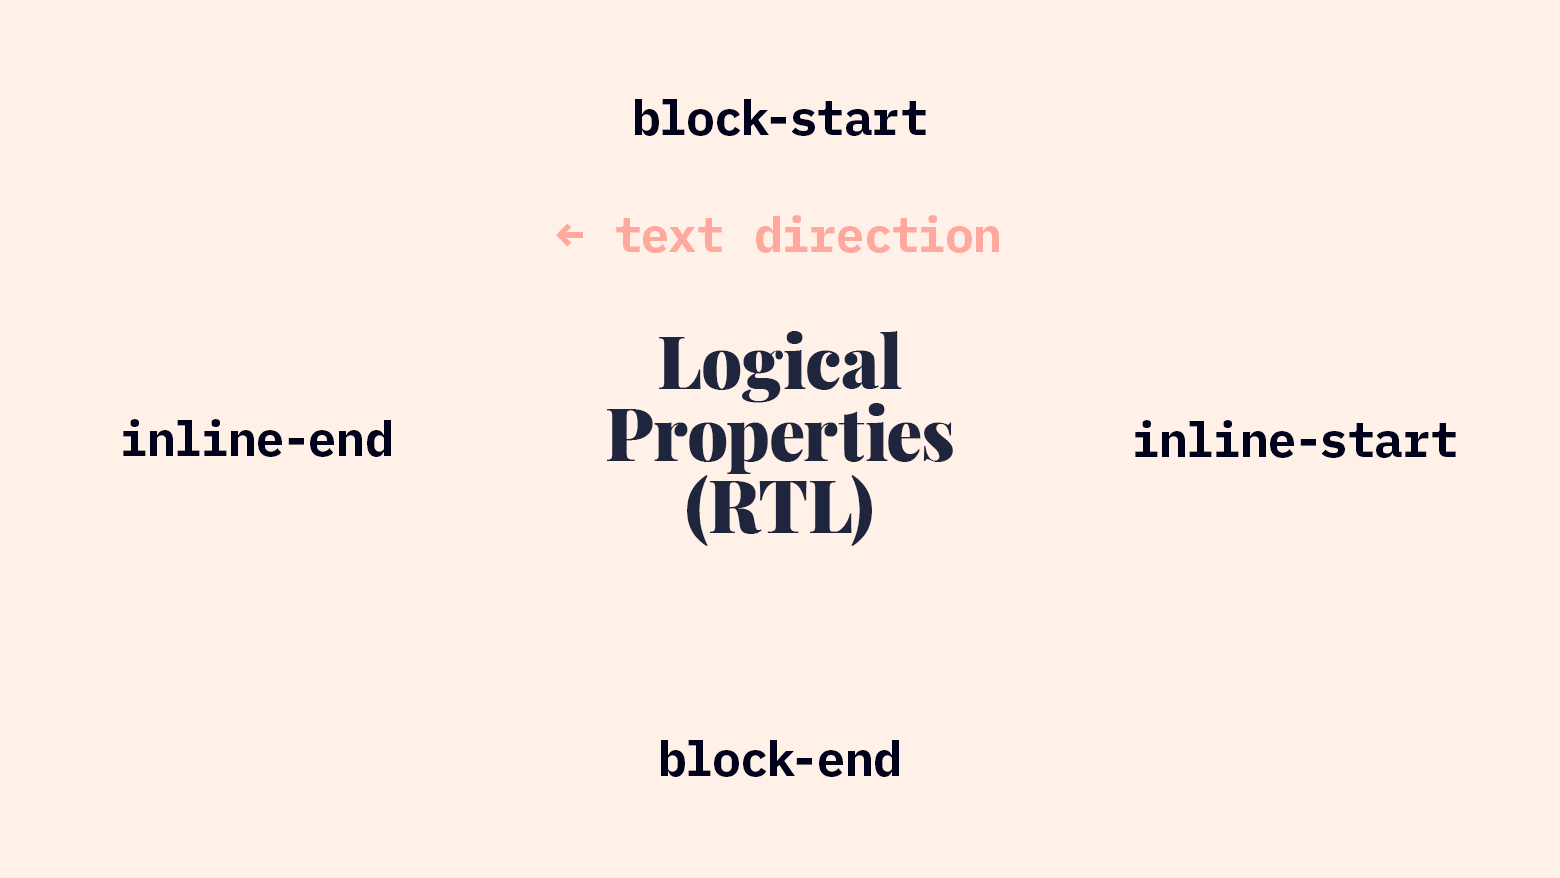 Logical Properties in RTL Writing Mode